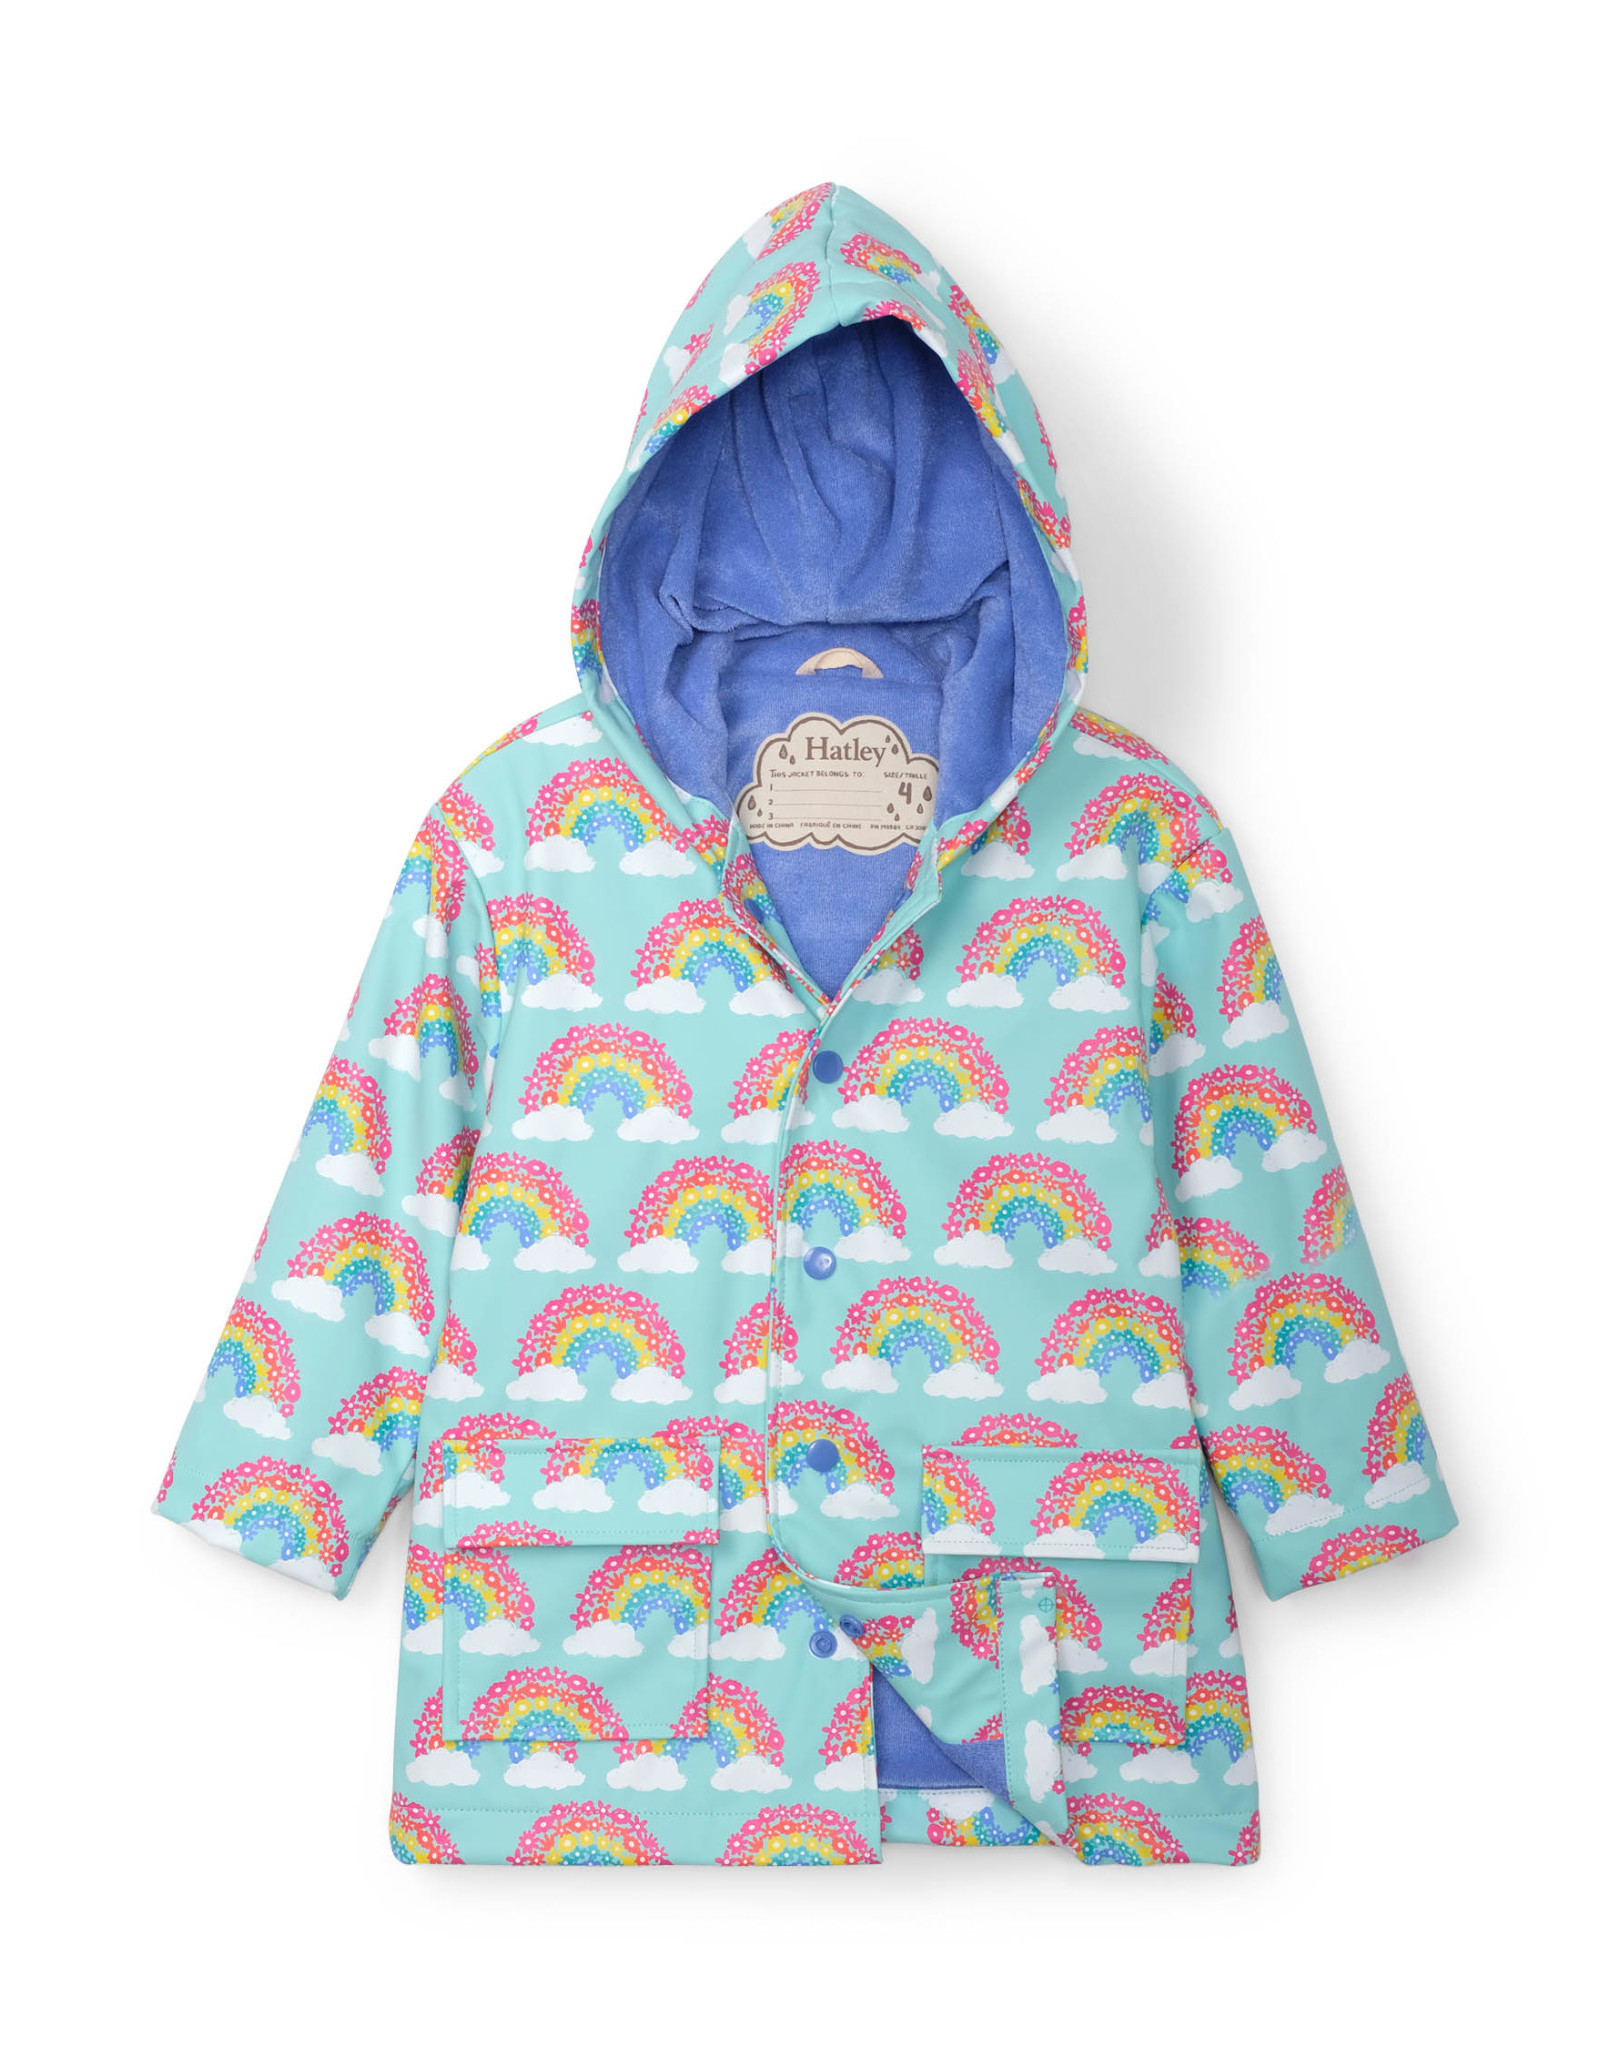 MAGICAL RAINBOWS RAINCOAT